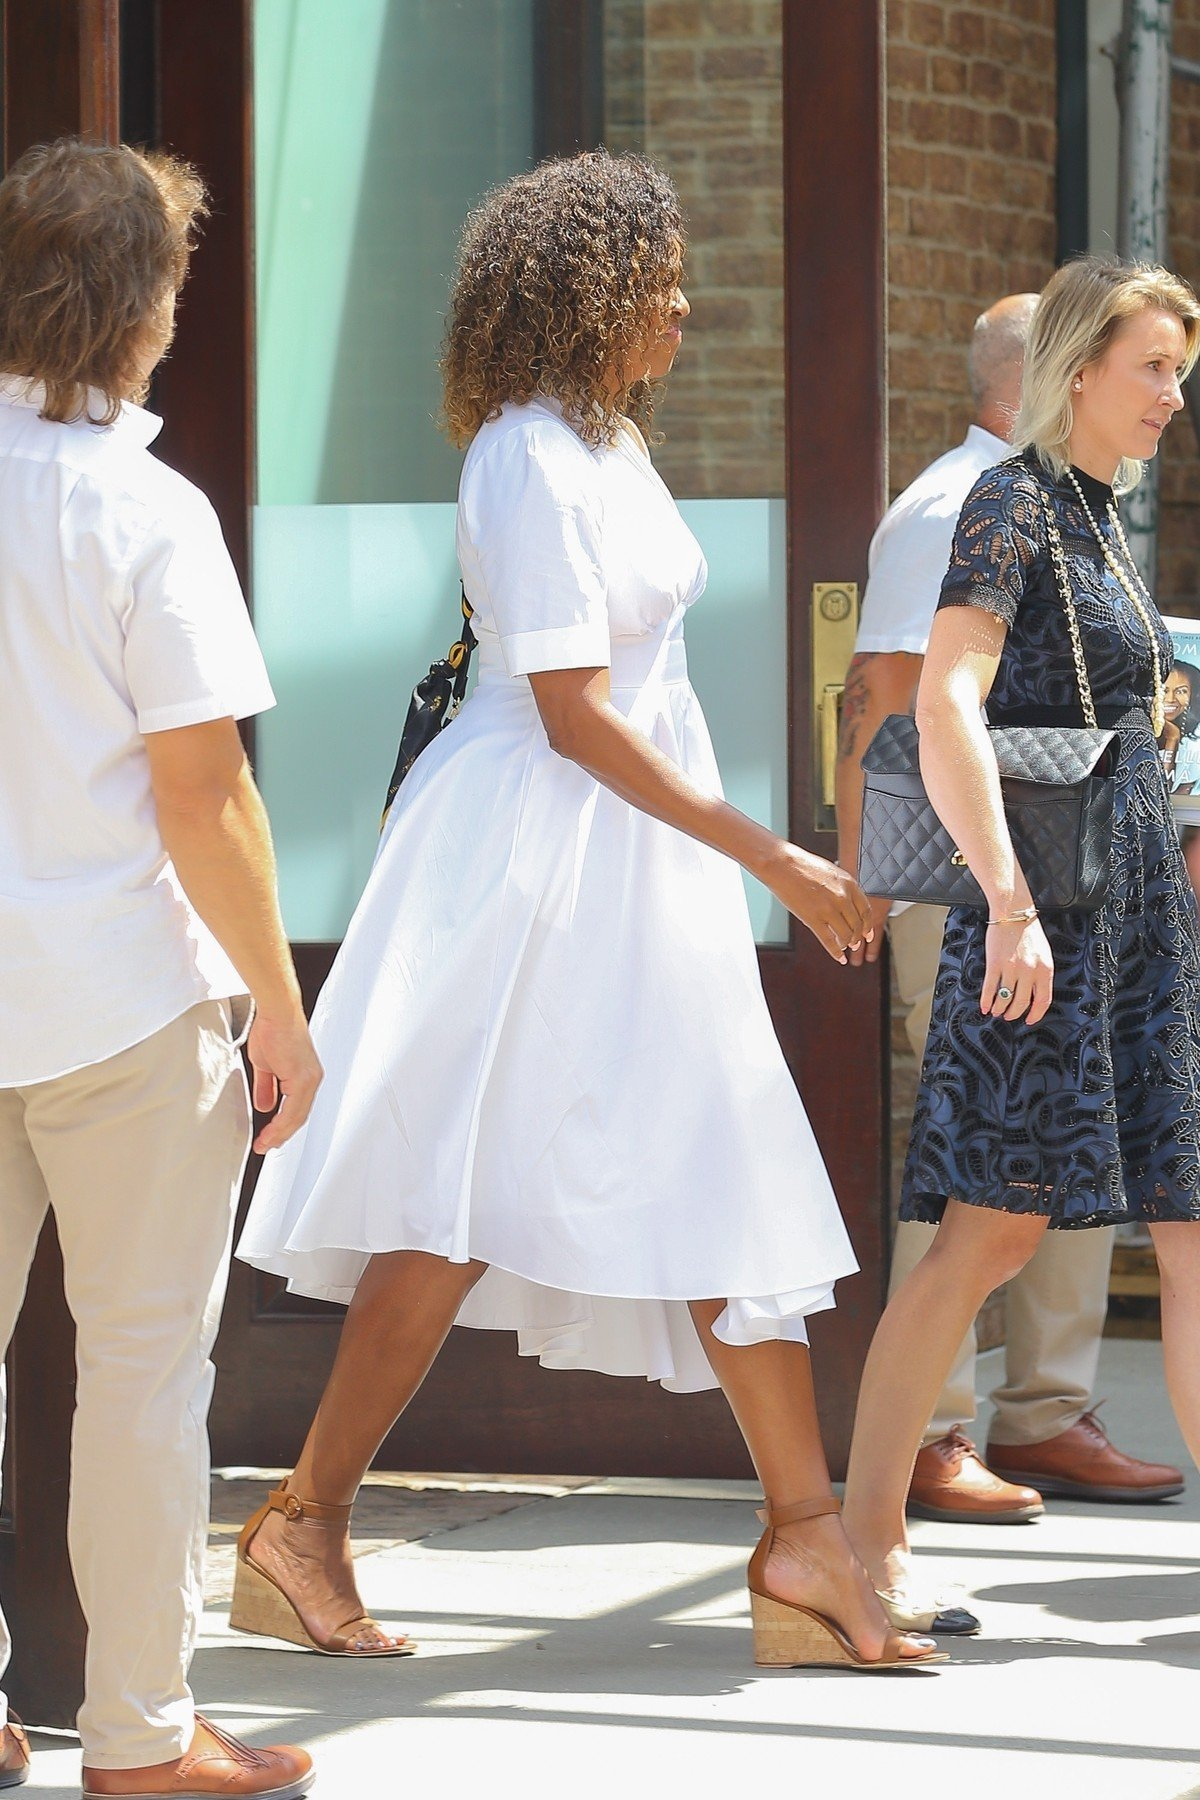 New York, NY  - Michelle Obama steps out in NYC wearing a flowing white dress under the hot sun!  *UK Clients - Pictures Containing Children Please Pixelate Face Prior To Publication*, Image: 460832411, License: Rights-managed, Restrictions: , Model Release: no, Credit line: Profimedia, Backgrid USA